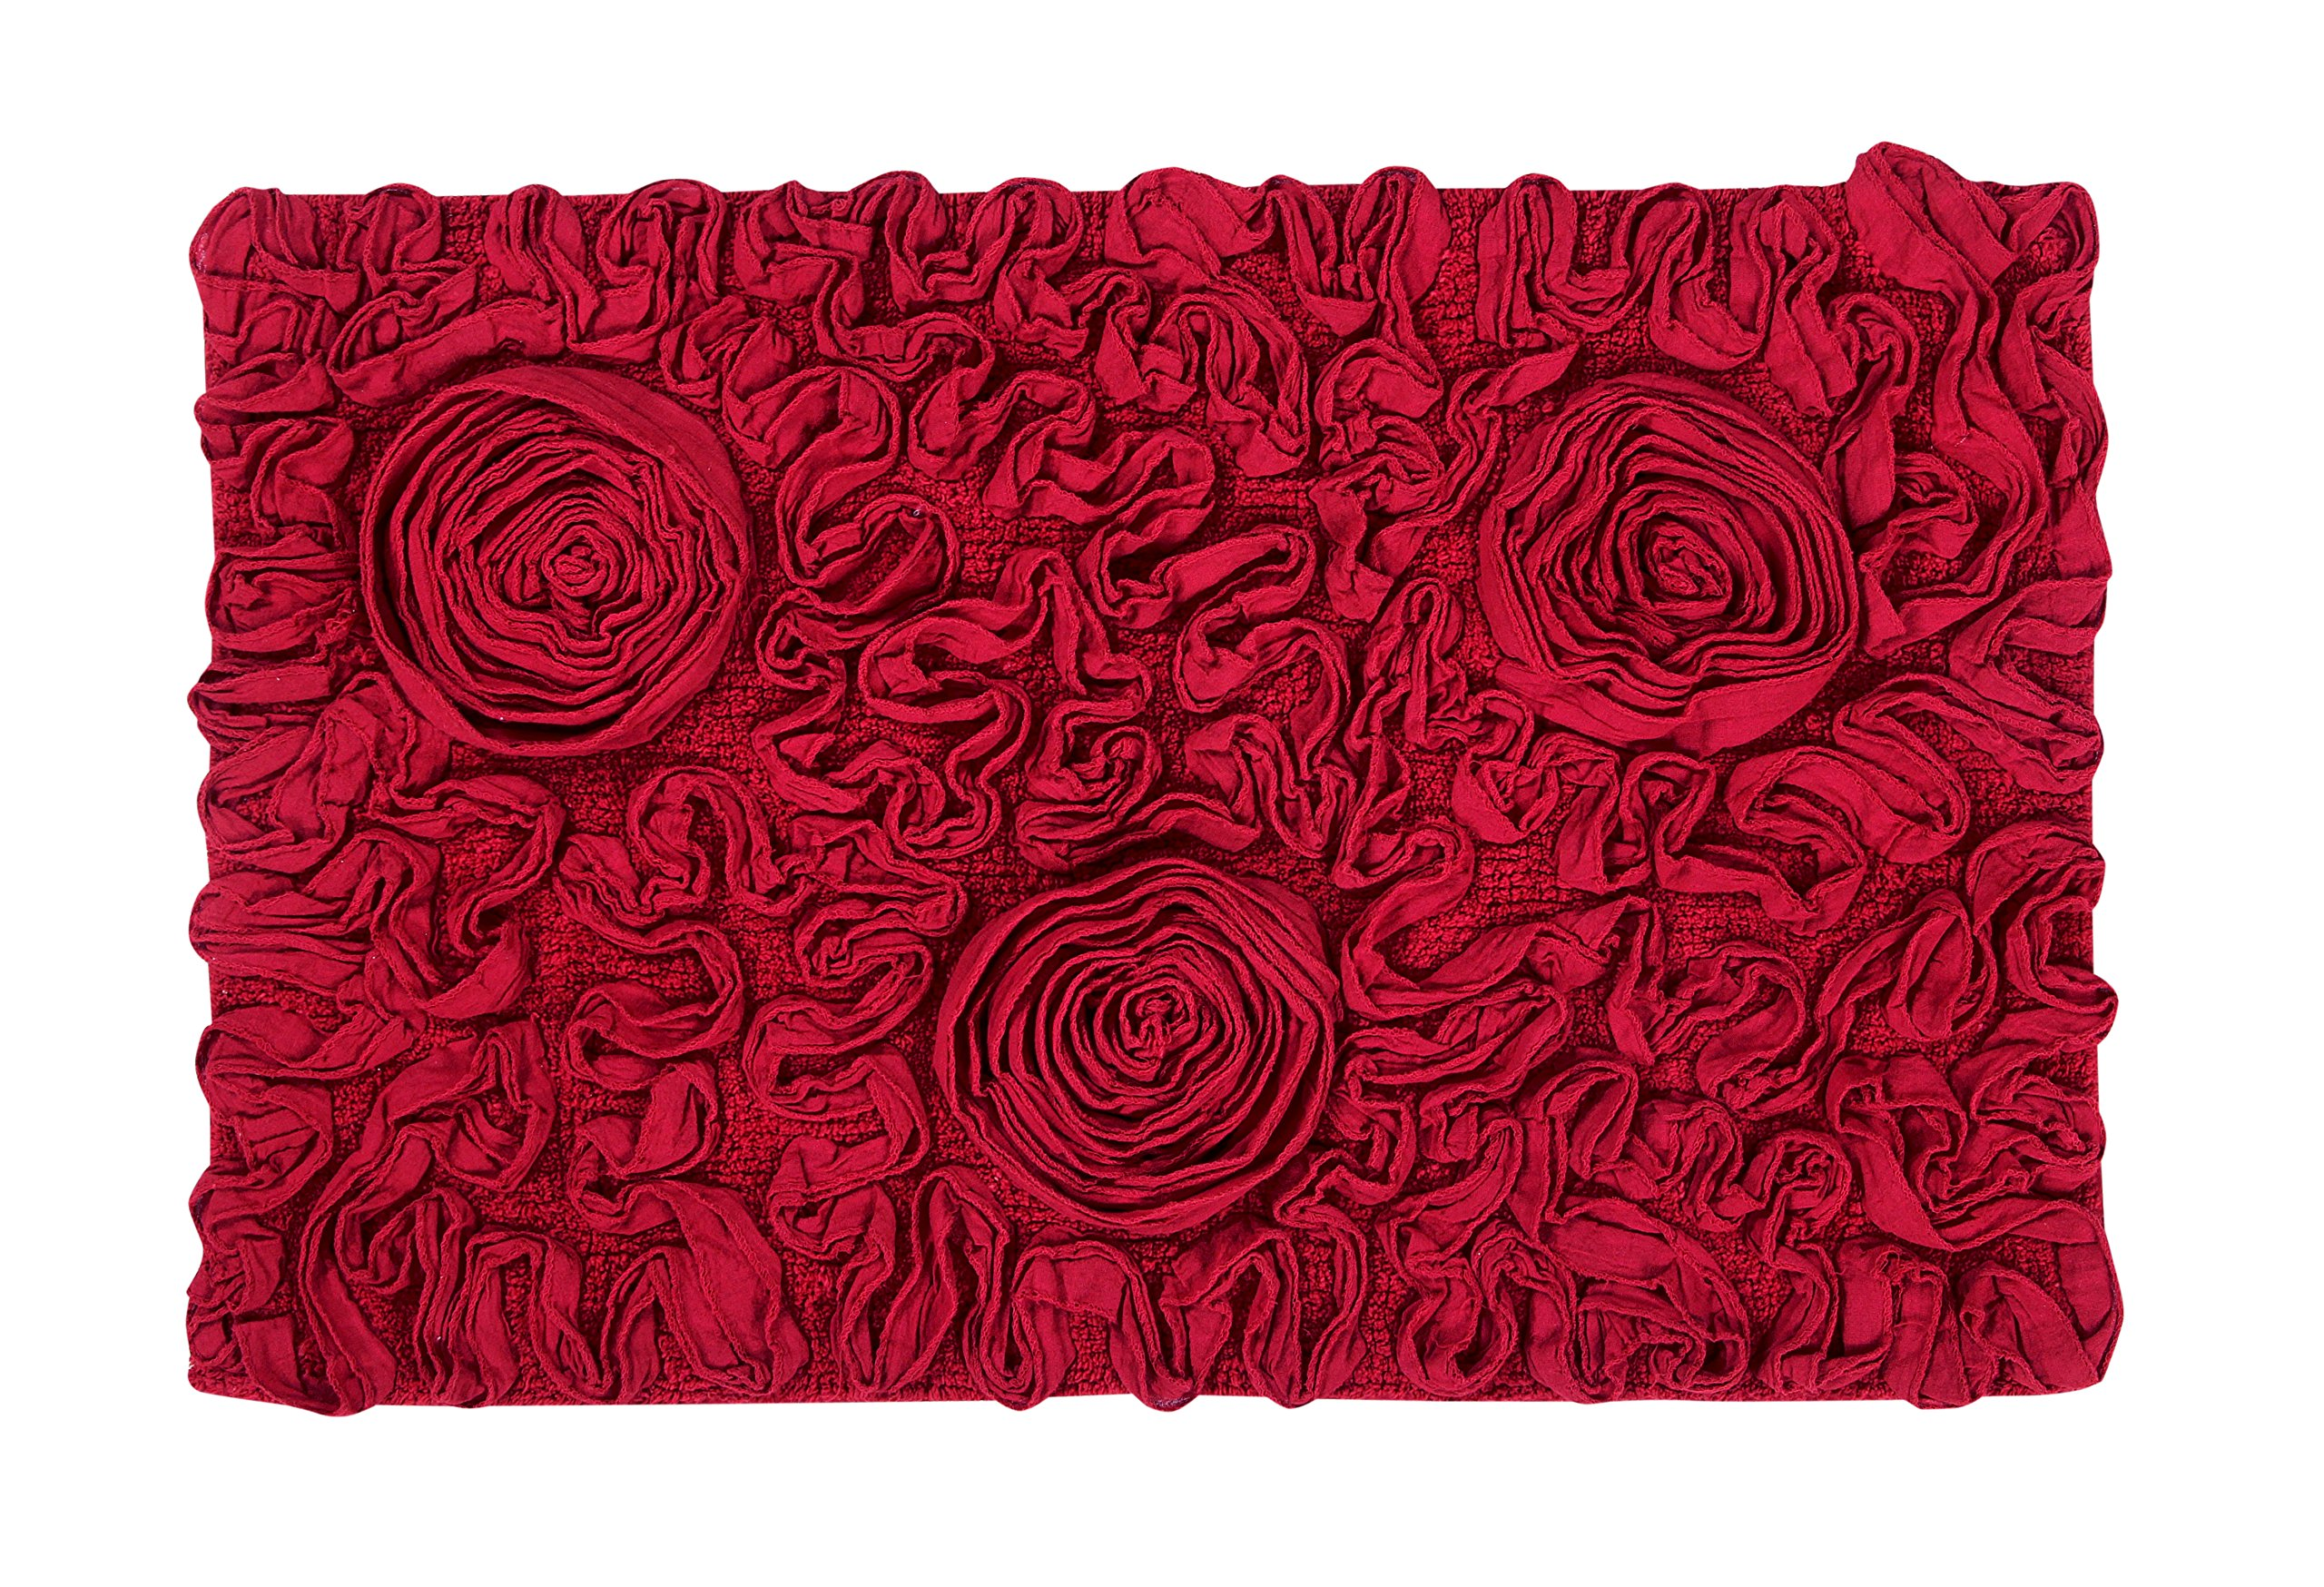 Home Weavers Bell Flower Rug, Red, 21'' x 34'' by Home Weavers (Image #1)